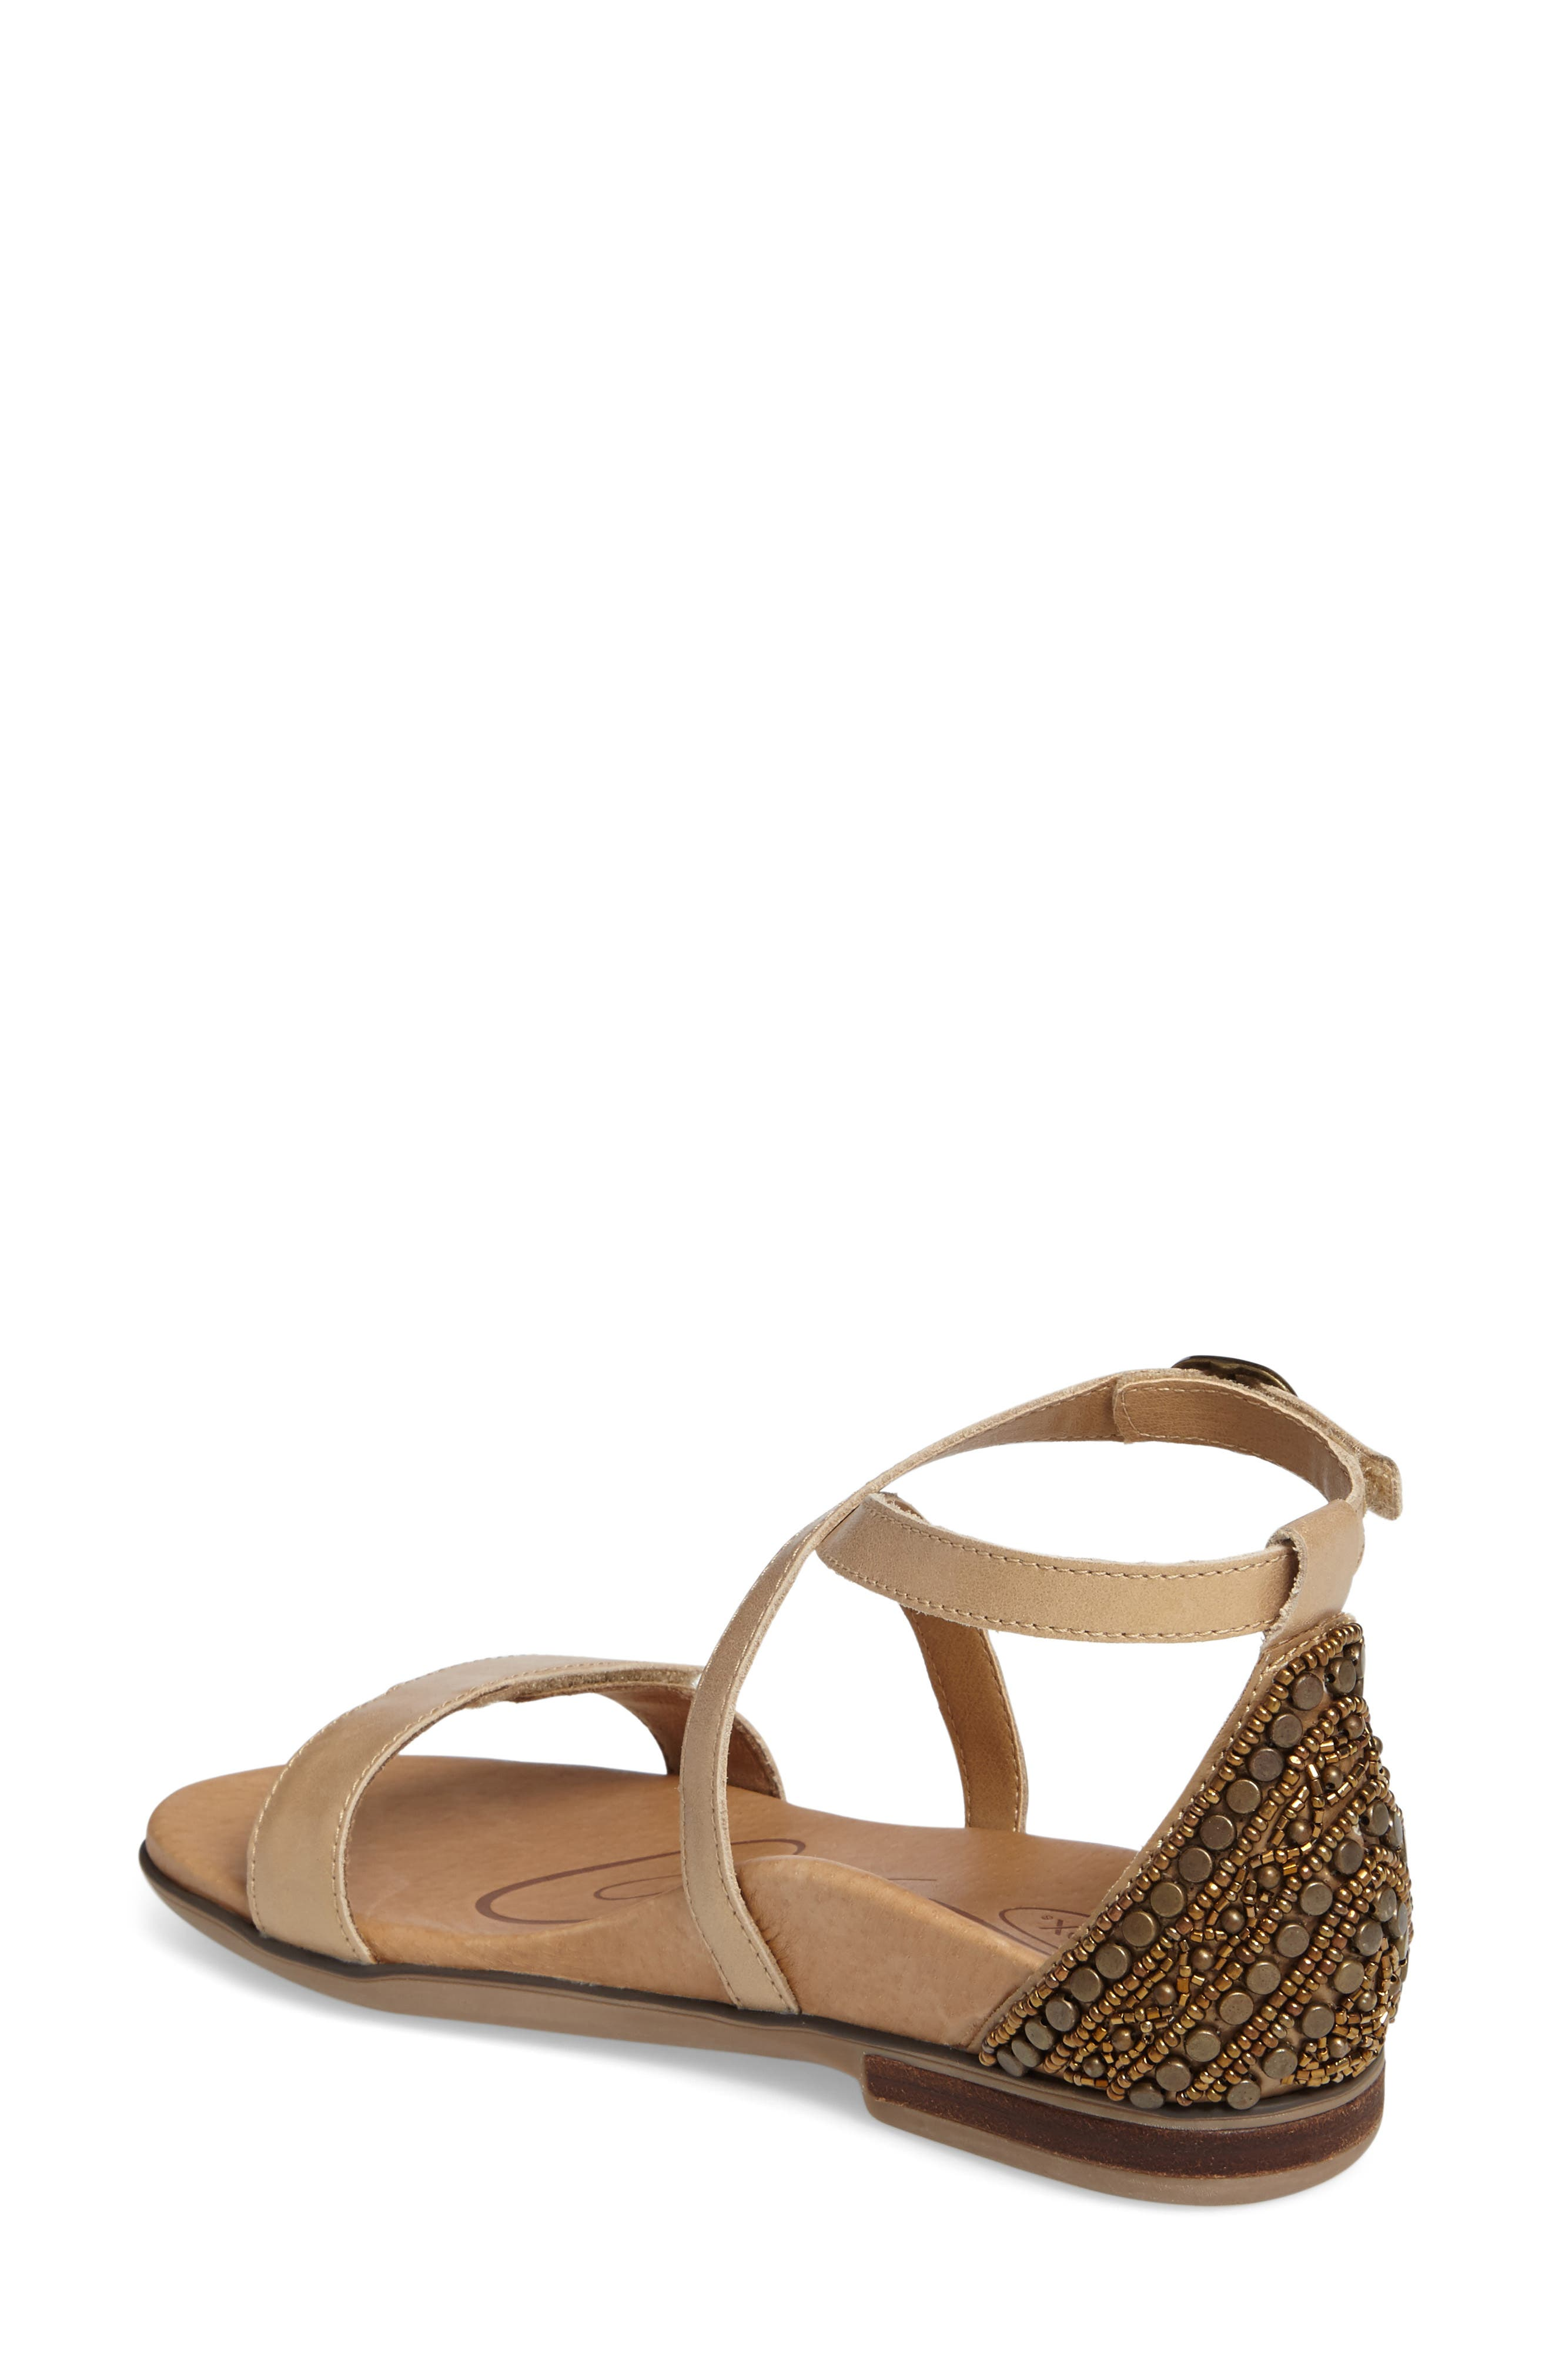 AETREX, Brenda Embellished Cross Strap Sandal, Alternate thumbnail 2, color, STONE LEATHER